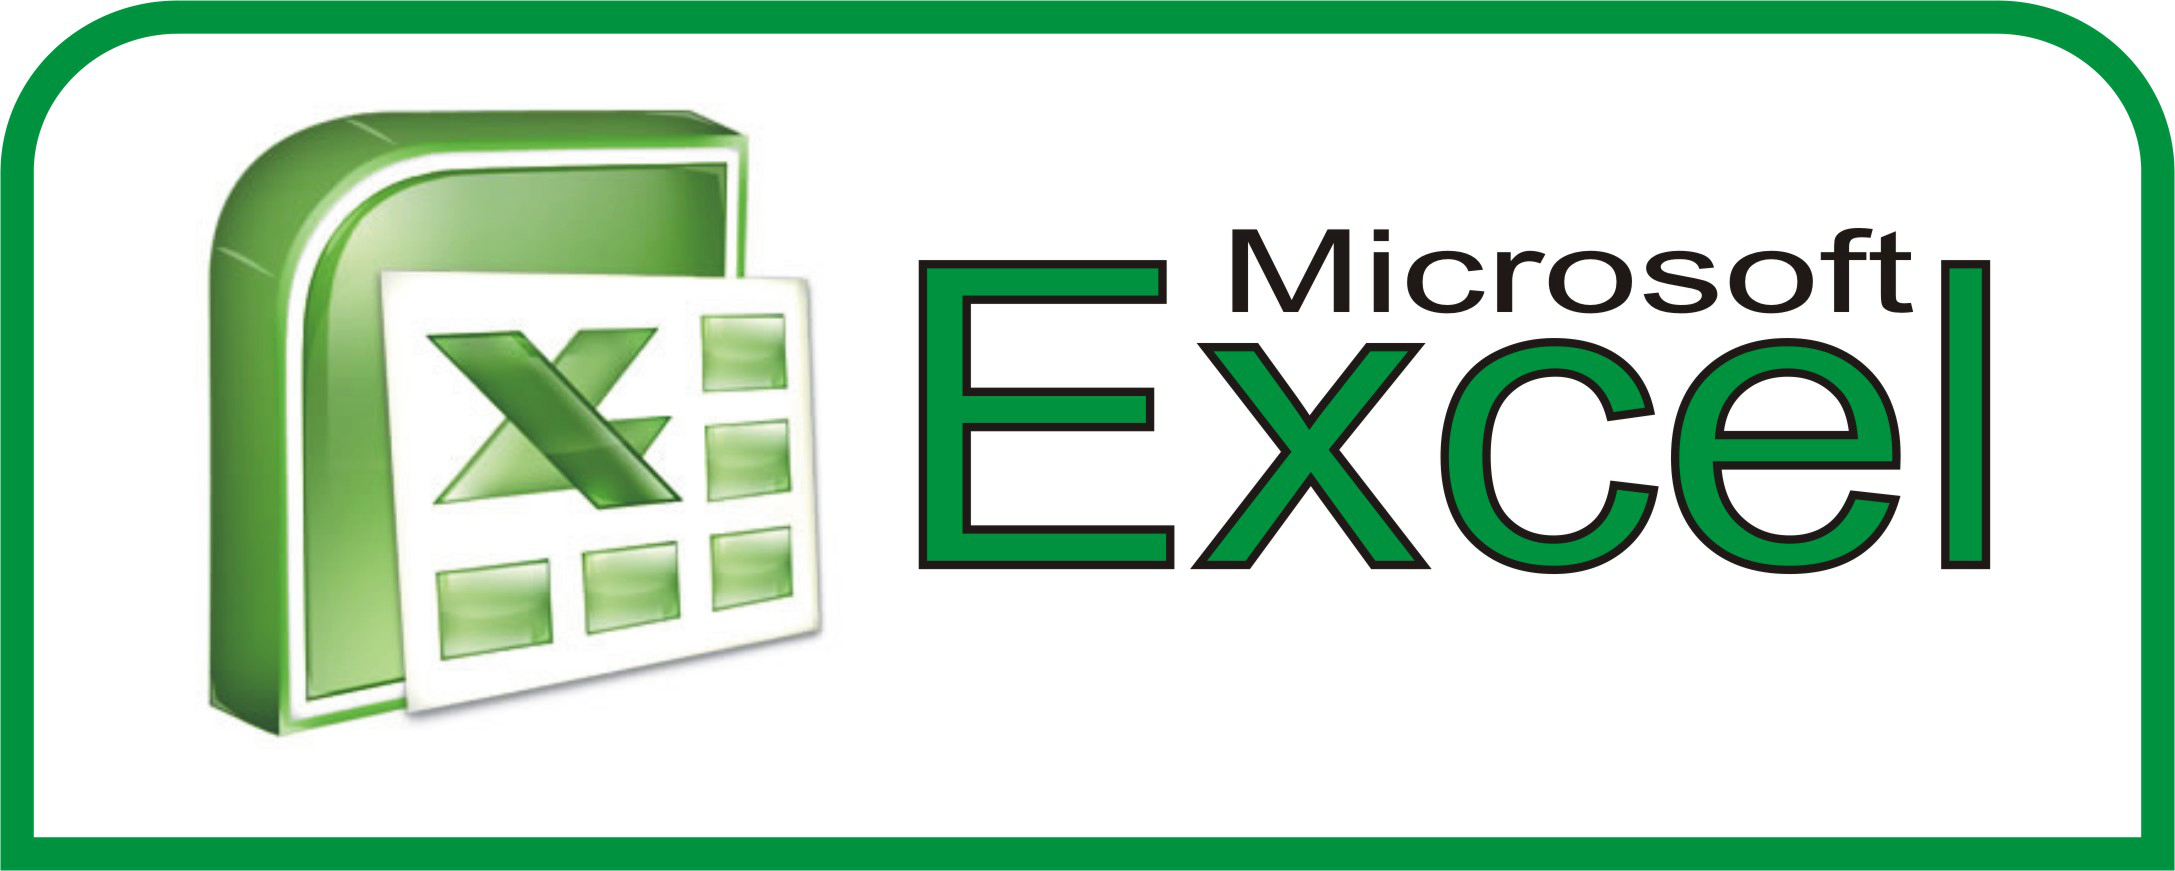 Ediblewildsus  Unique  Excel Shortcuts You Probably Didnt Know About  Techdissected With Goodlooking Excel Factorial Besides How To Enter Formula In Excel Furthermore Createobject Excel Application With Extraordinary Array Function Excel Also Excel Sensitivity Analysis In Addition Switch Columns In Excel And How To Link Excel Spreadsheets As Well As Project Management Excel Additionally How To Unfreeze Cells In Excel From Techdissectedcom With Ediblewildsus  Goodlooking  Excel Shortcuts You Probably Didnt Know About  Techdissected With Extraordinary Excel Factorial Besides How To Enter Formula In Excel Furthermore Createobject Excel Application And Unique Array Function Excel Also Excel Sensitivity Analysis In Addition Switch Columns In Excel From Techdissectedcom